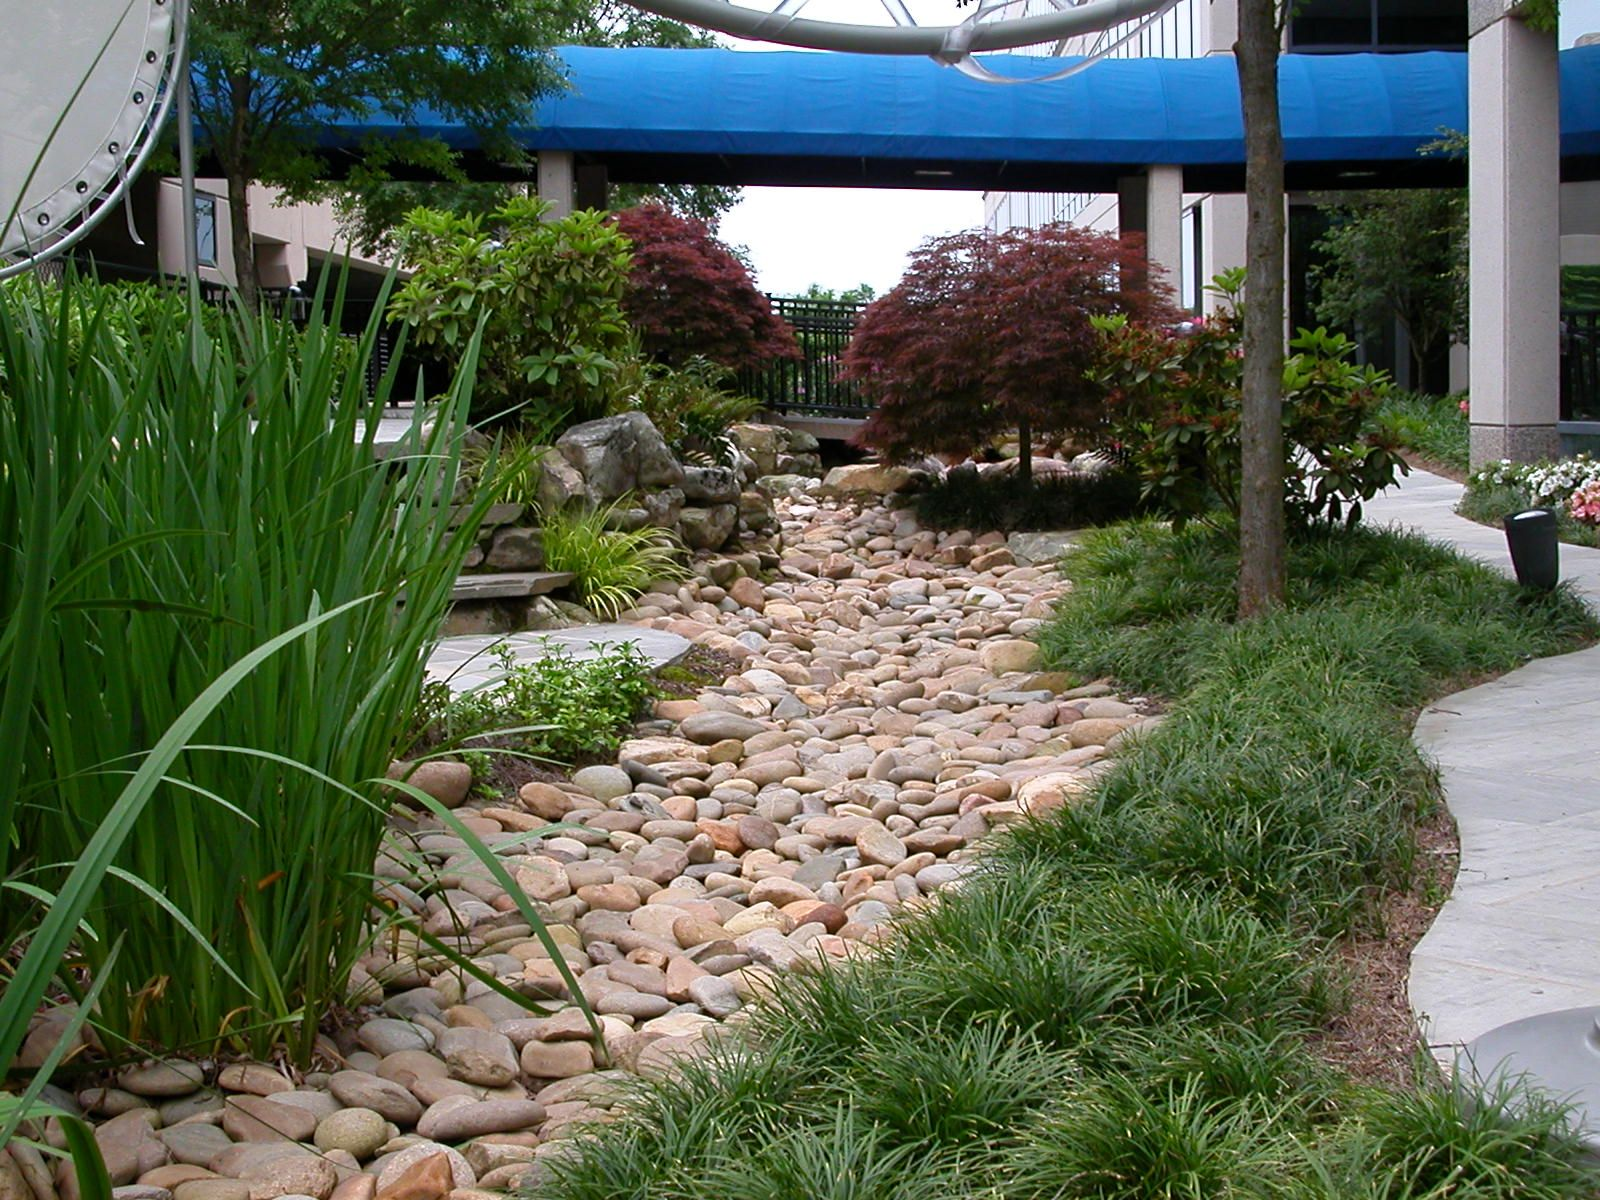 Drainage Ideas For Backyard turning your drainage into a beautiful dry stream bed atlanta post biltmore this is great resource for diy landscape Turning Your Drainage Ditch Into A Beautiful Dry Stream Bed Outdoor Landscaping Ideas Outdoor Landscaping